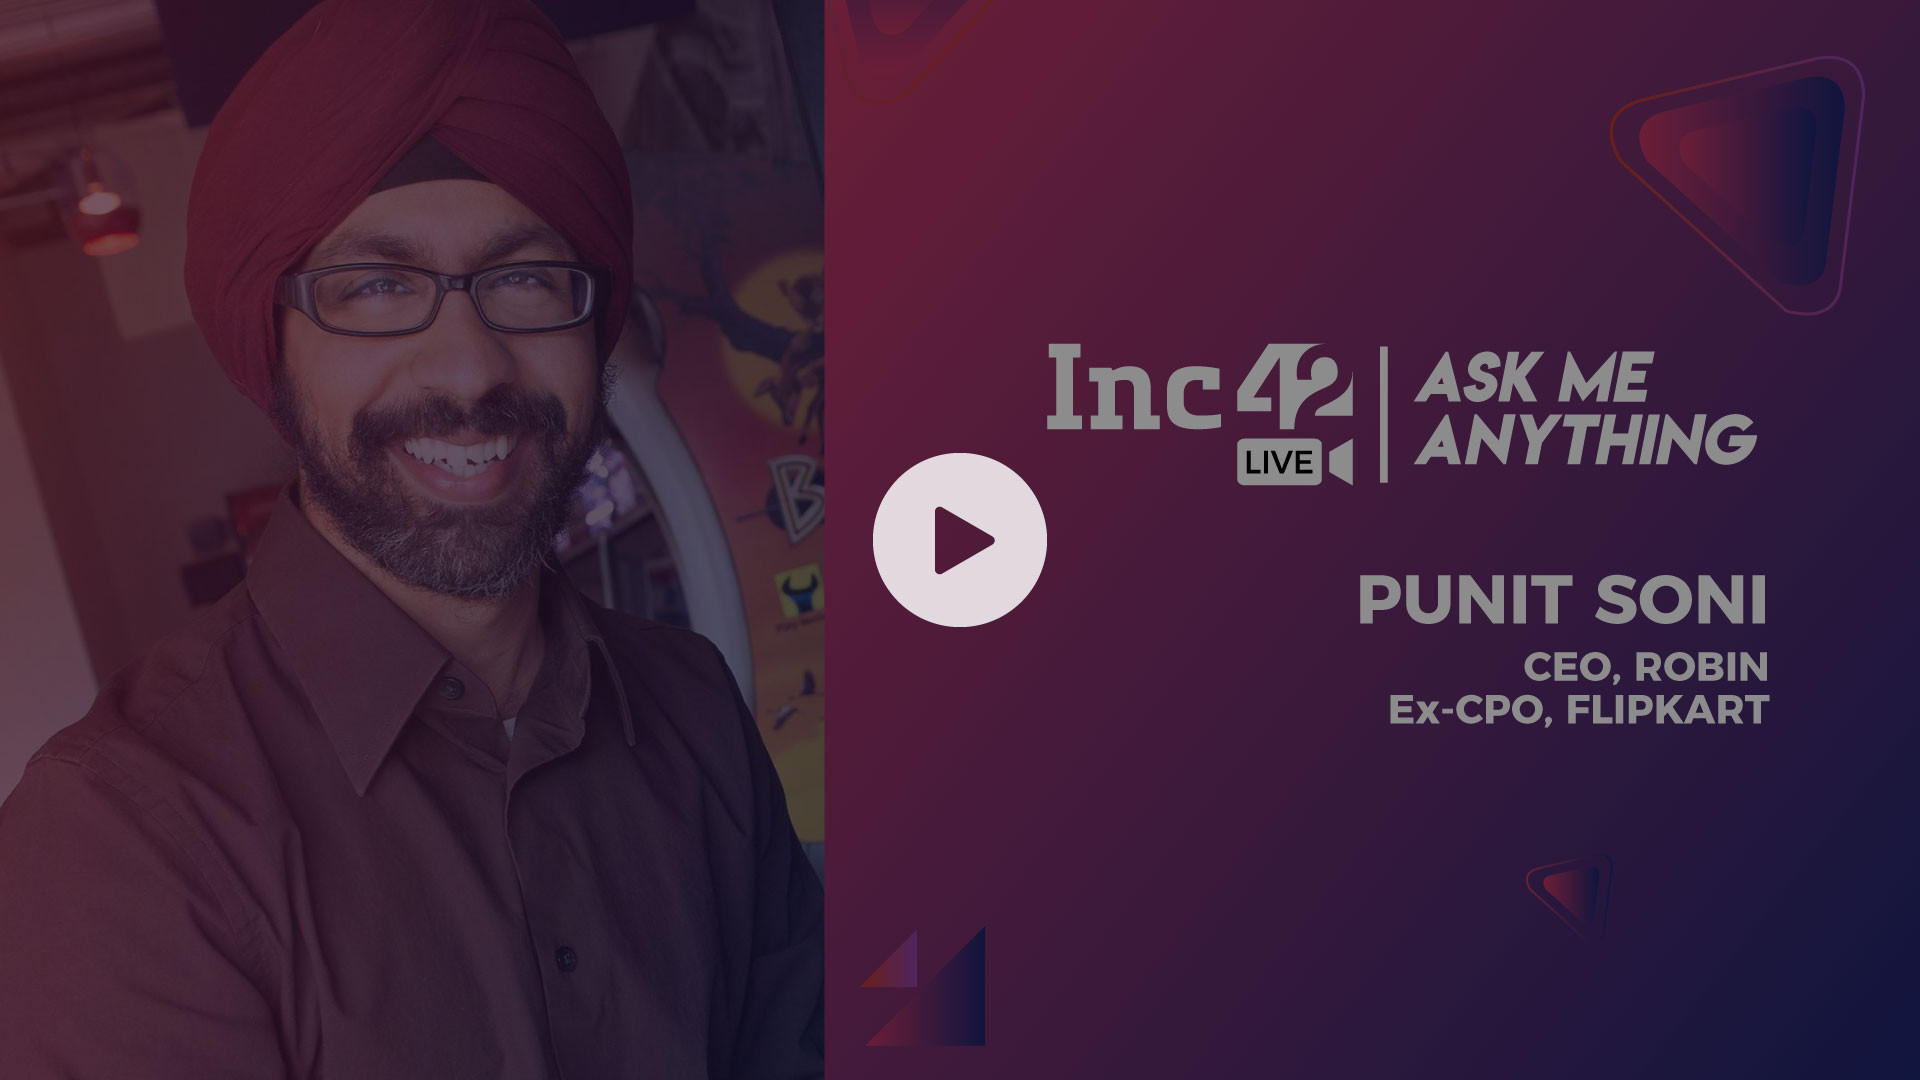 AMA of Punit Soni, CEO of Robin & ex-CPO of Flipkart with Pallav Kaushish from Inc42